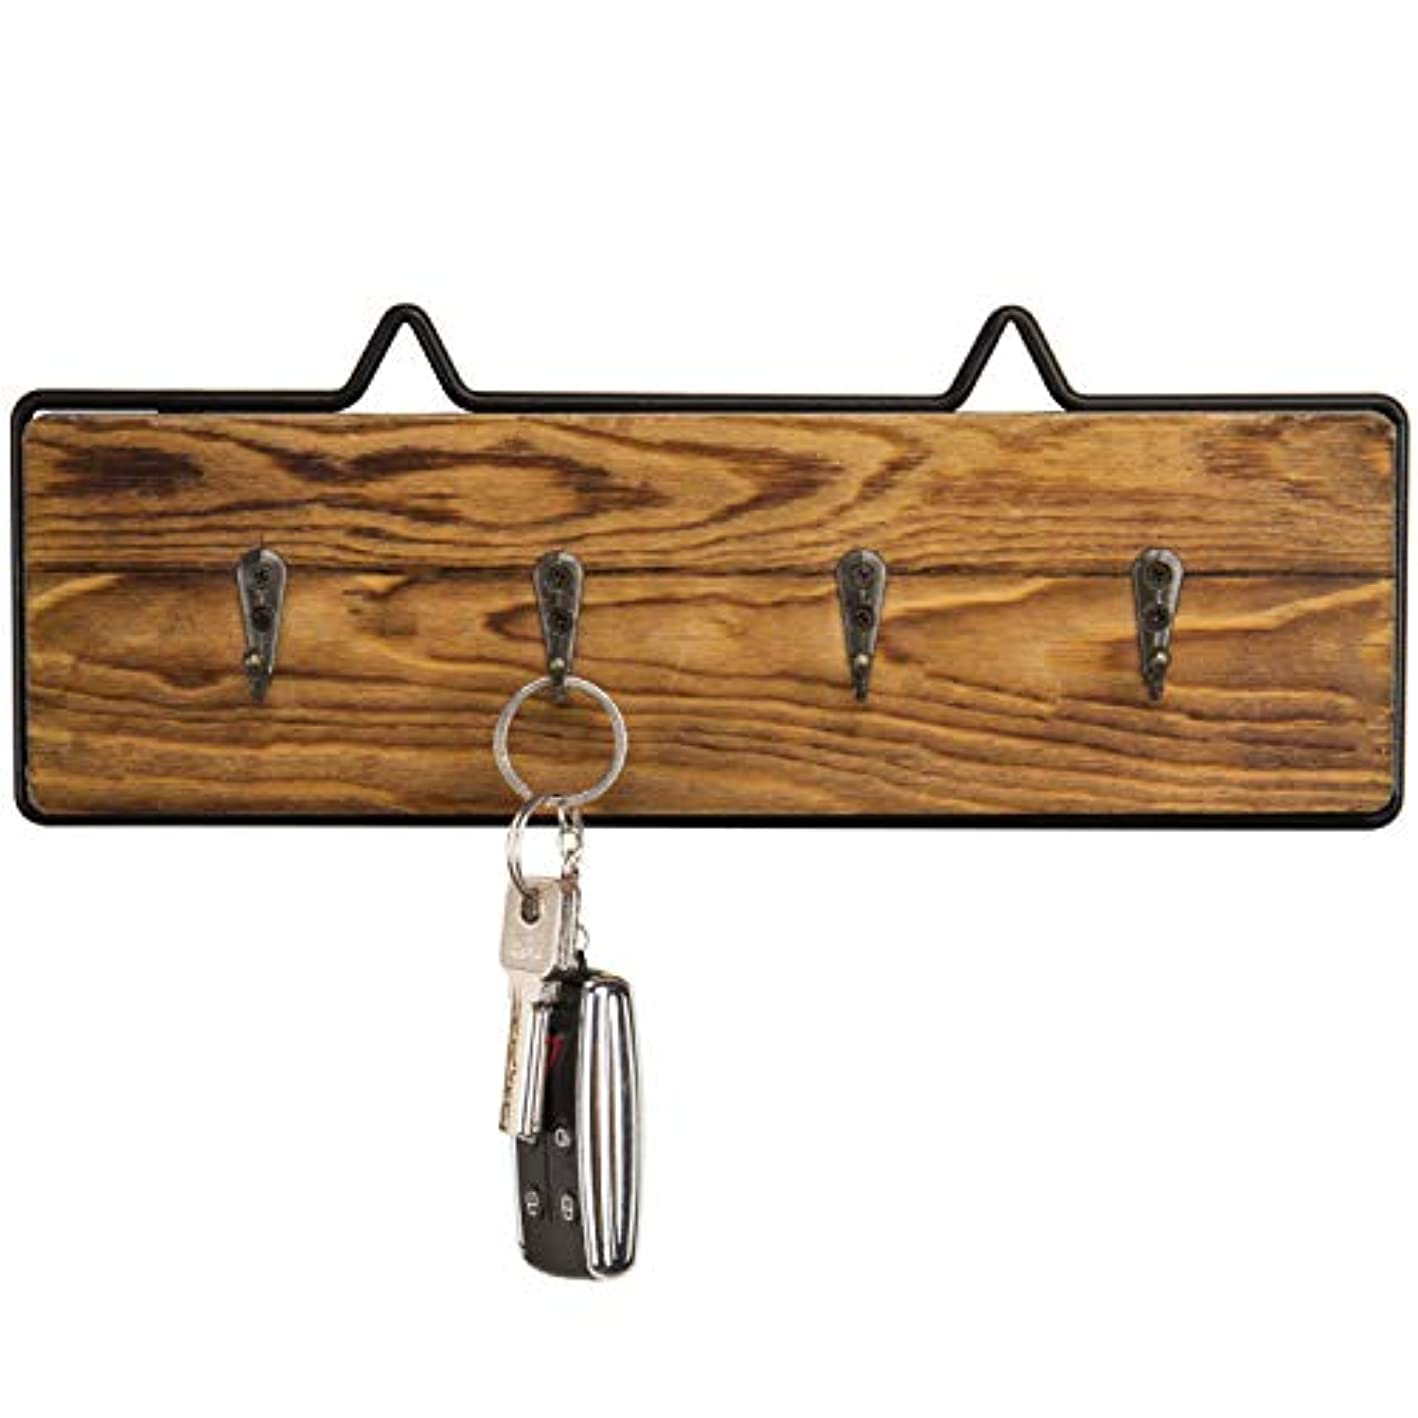 MyGift Rustic Wood & Wire Wall-Mounted 4-Hook Key Rack